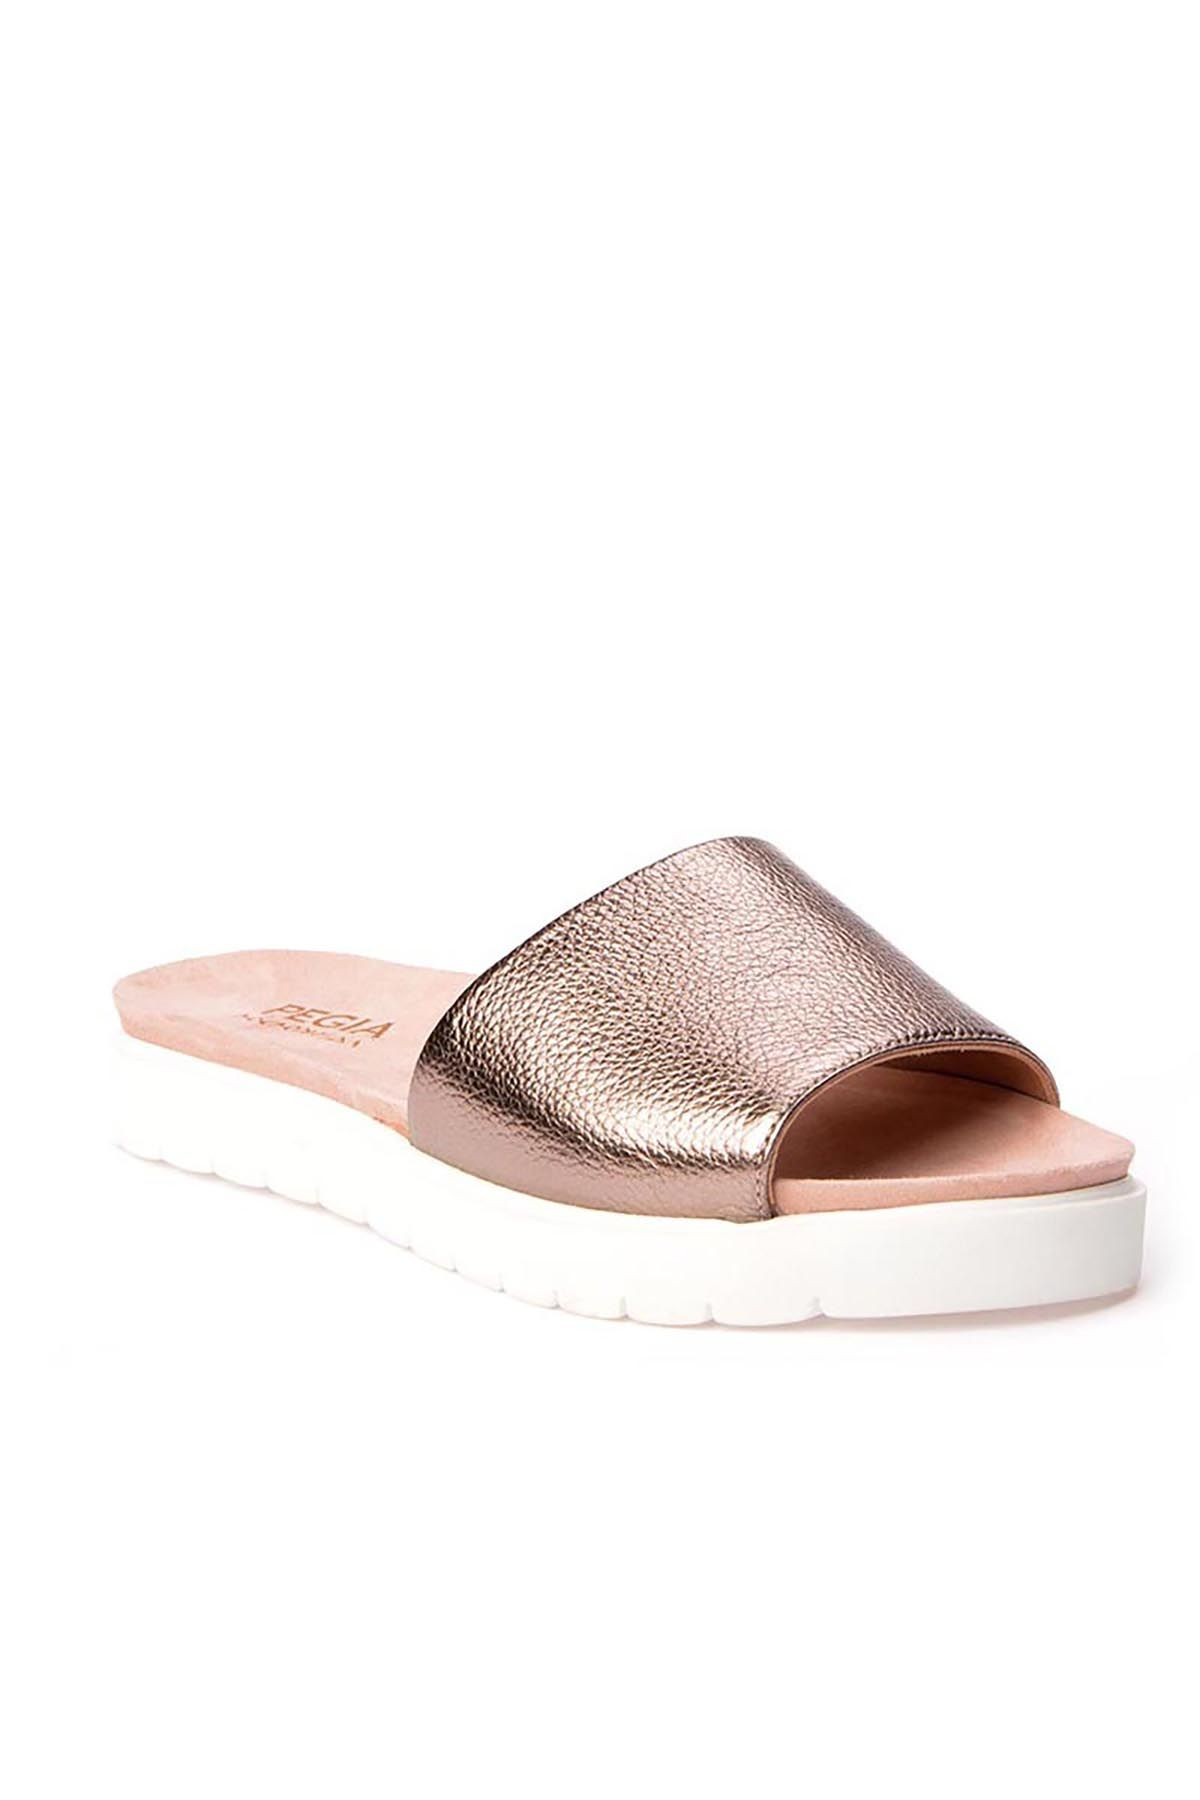 Pegia Drancy Women Slippers From Genuine Leather REC-006 Bronze